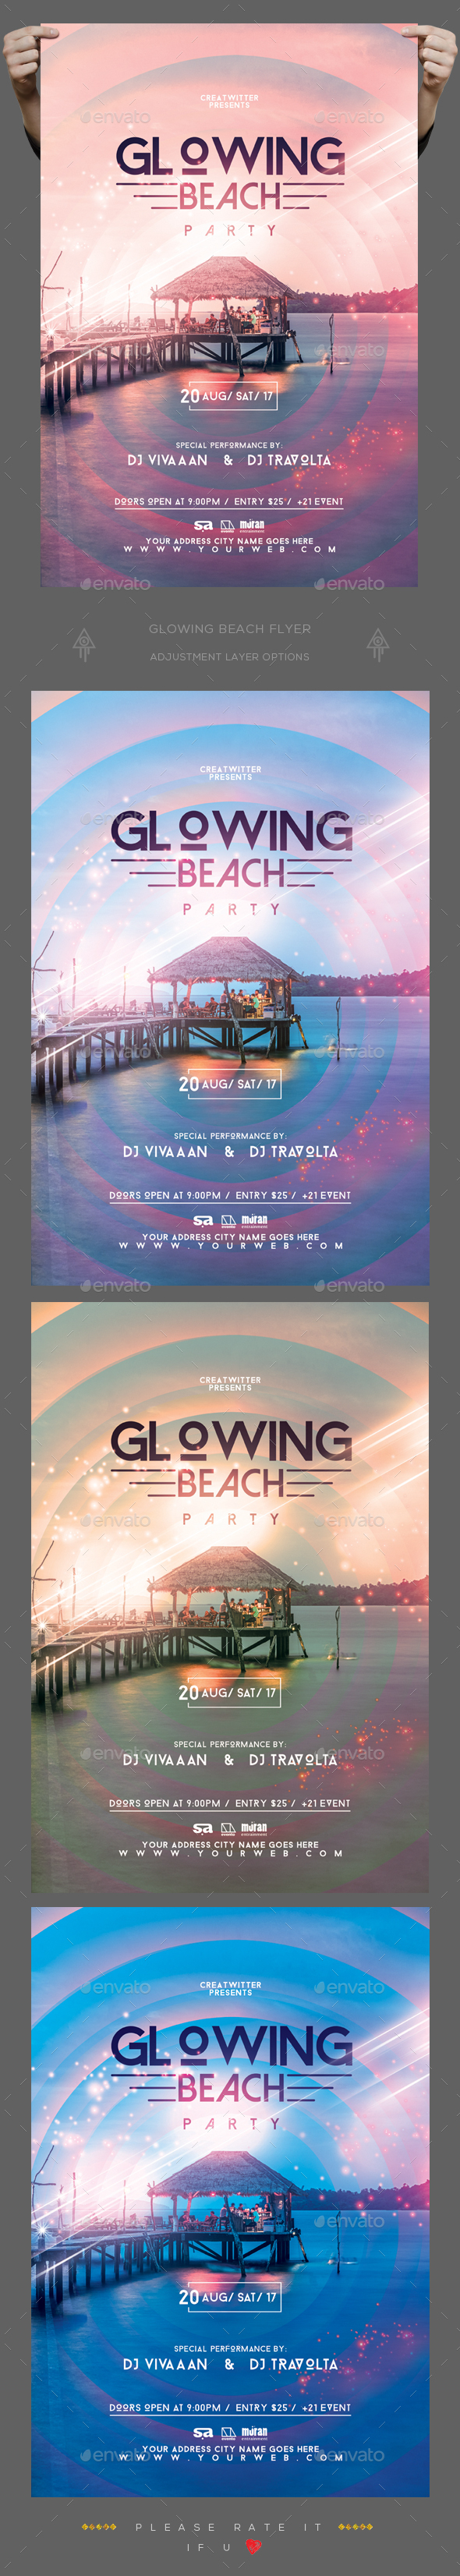 Glowing Beach Flyer - Clubs & Parties Events